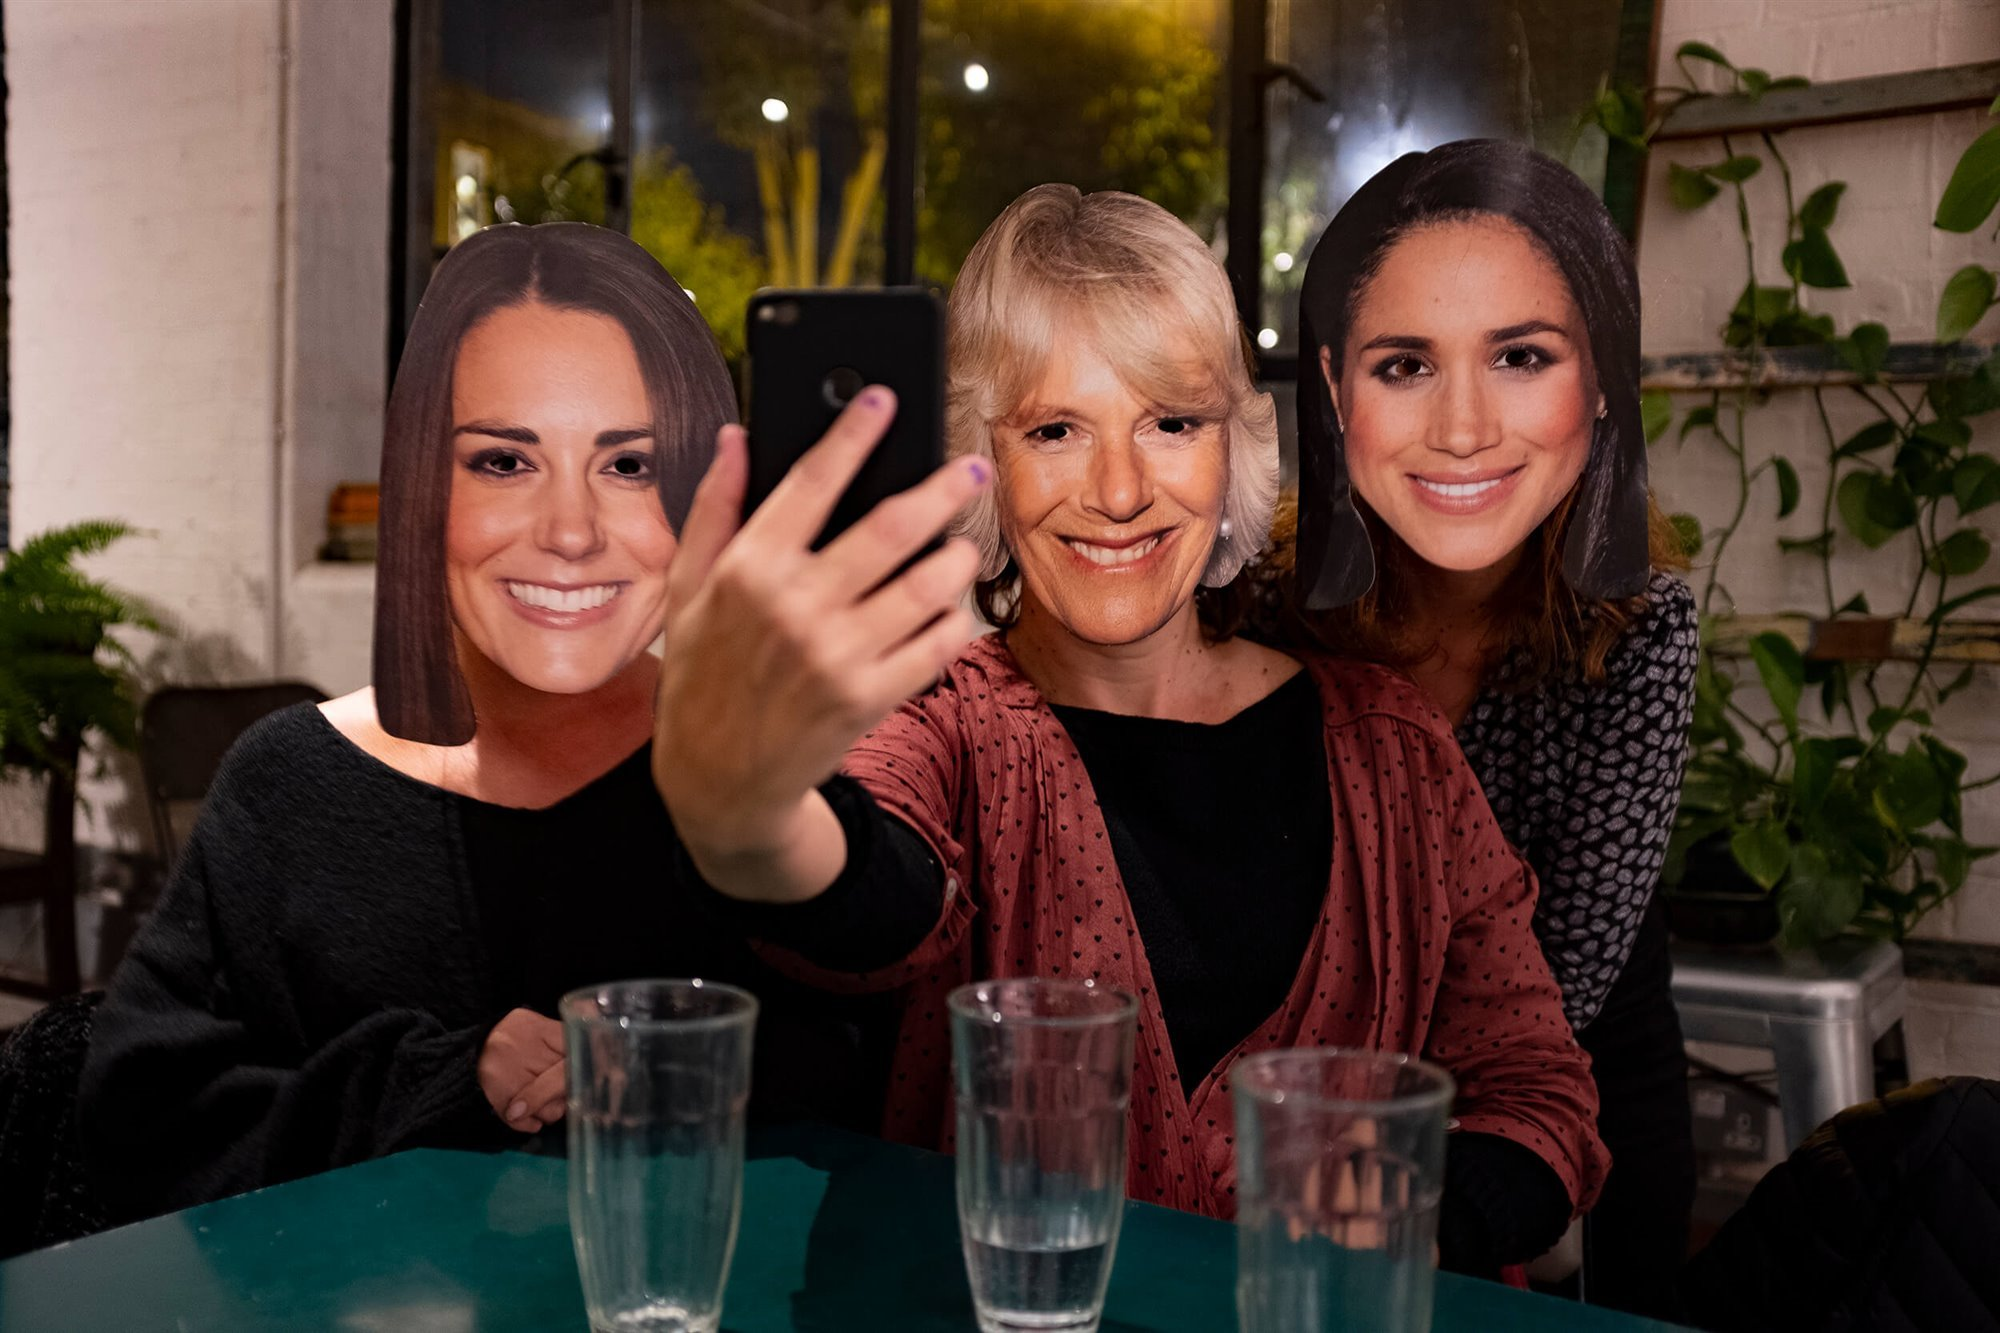 I wish we were Camilla, Kate and Meghan